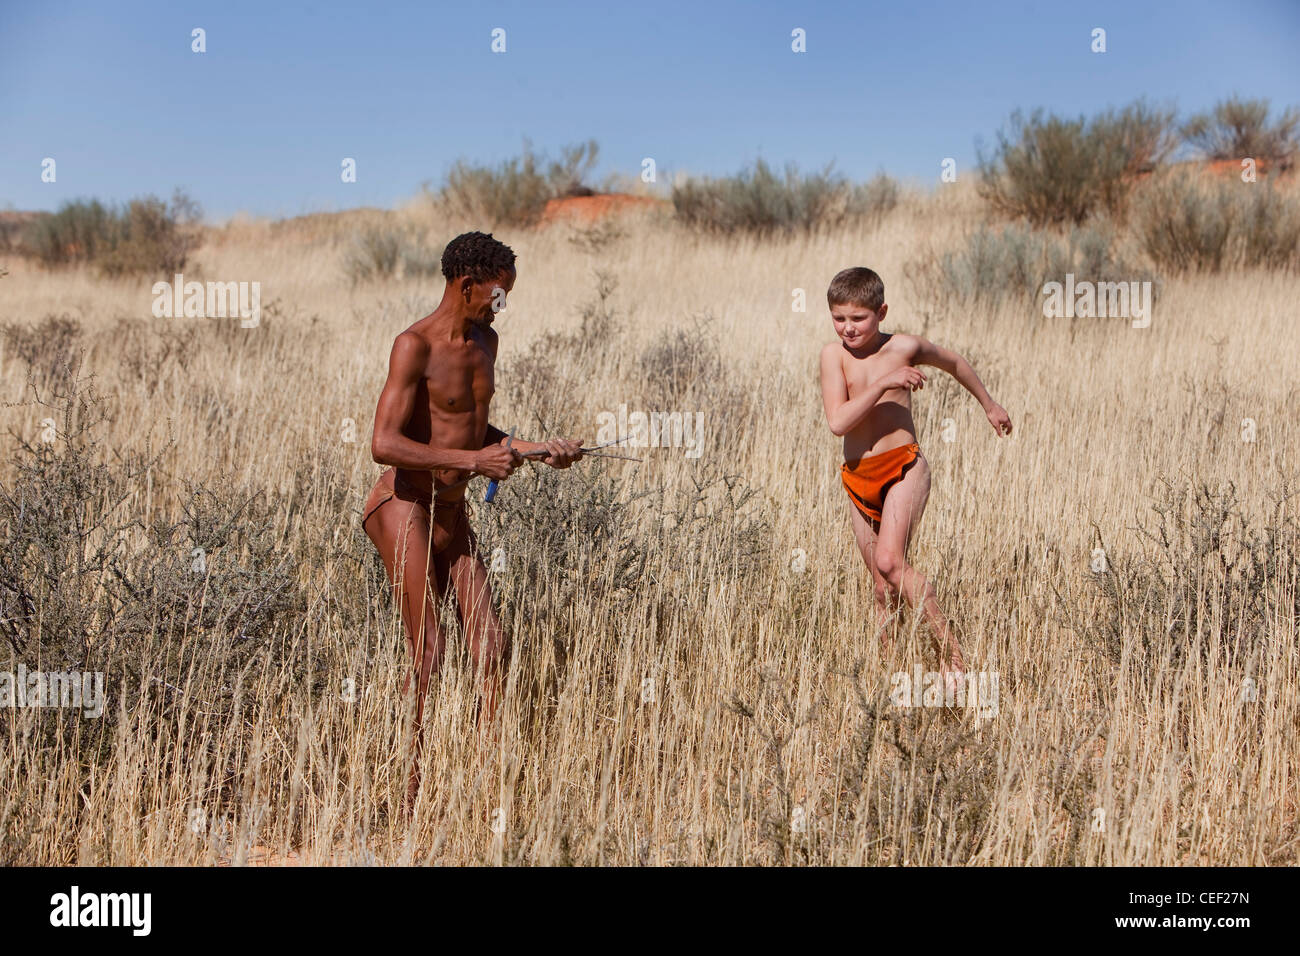 White boy and a bushman in Kagalagadi Transfrontier Park, Xaus camp, Namibia Africa - Stock Image